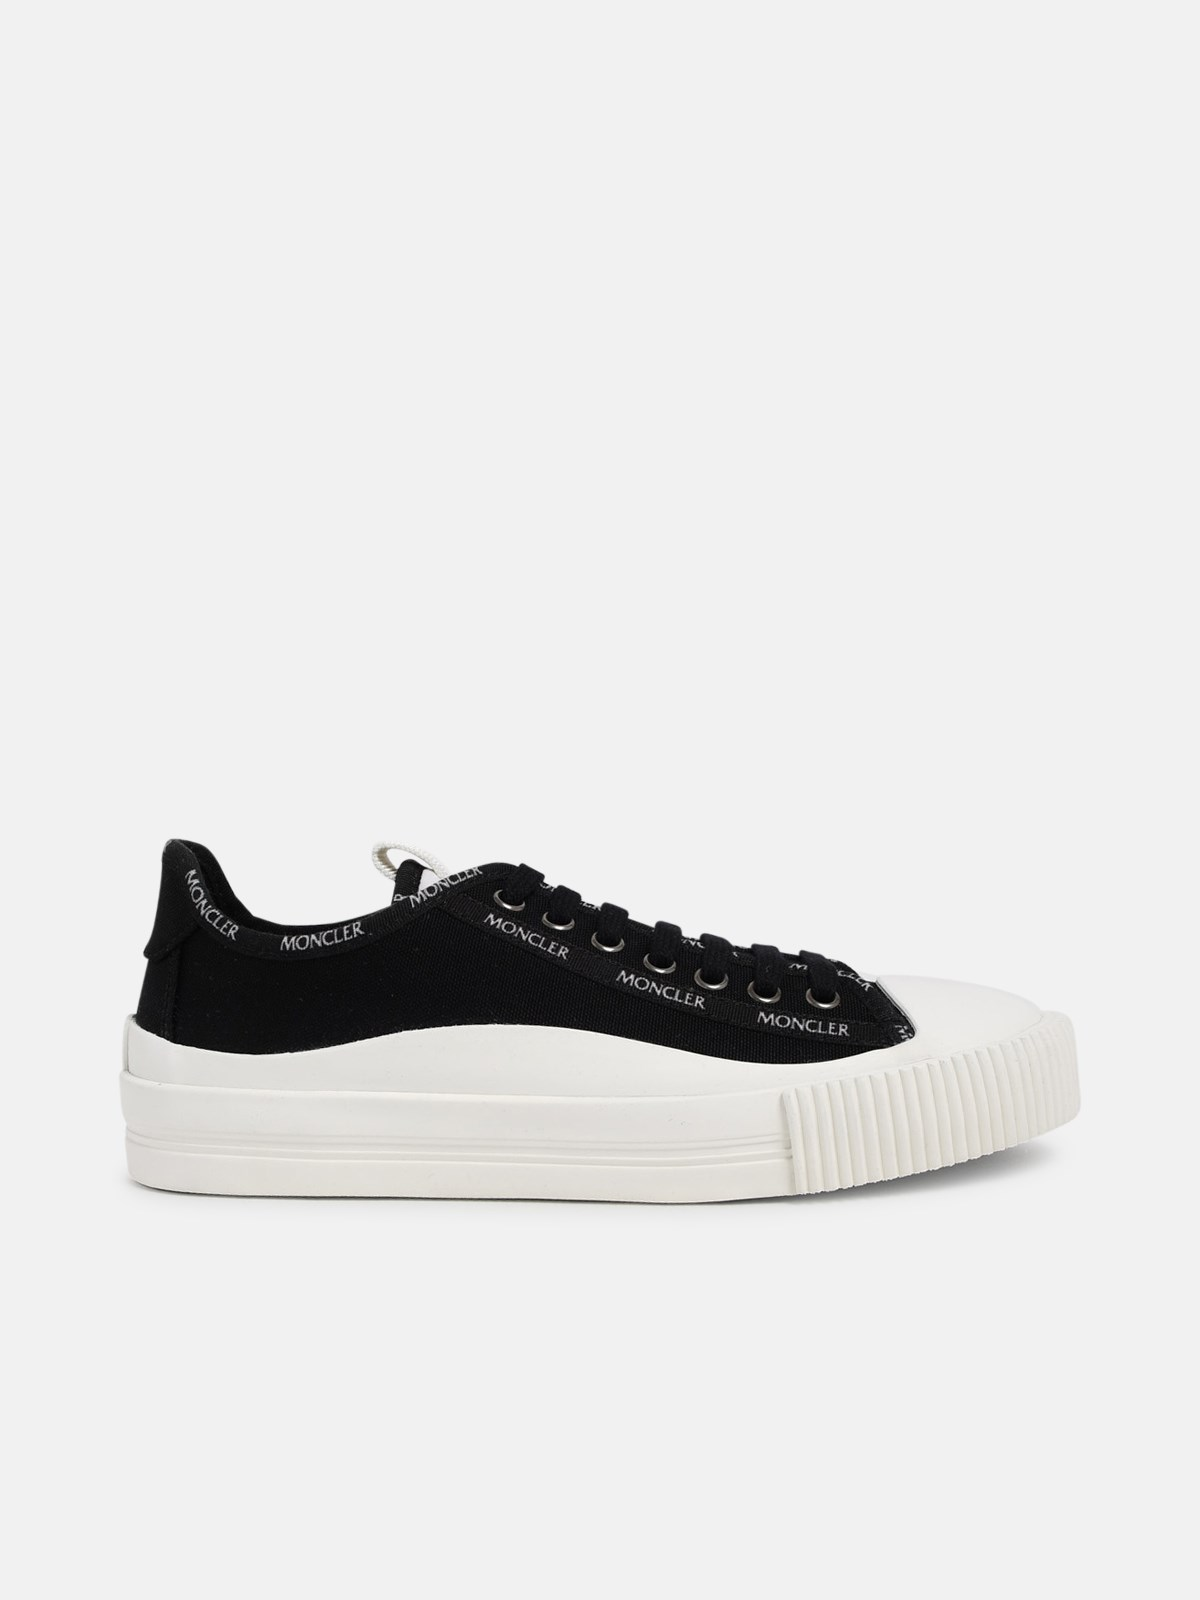 Moncler Canvases BLACK GLISSIERE SNEAKERS